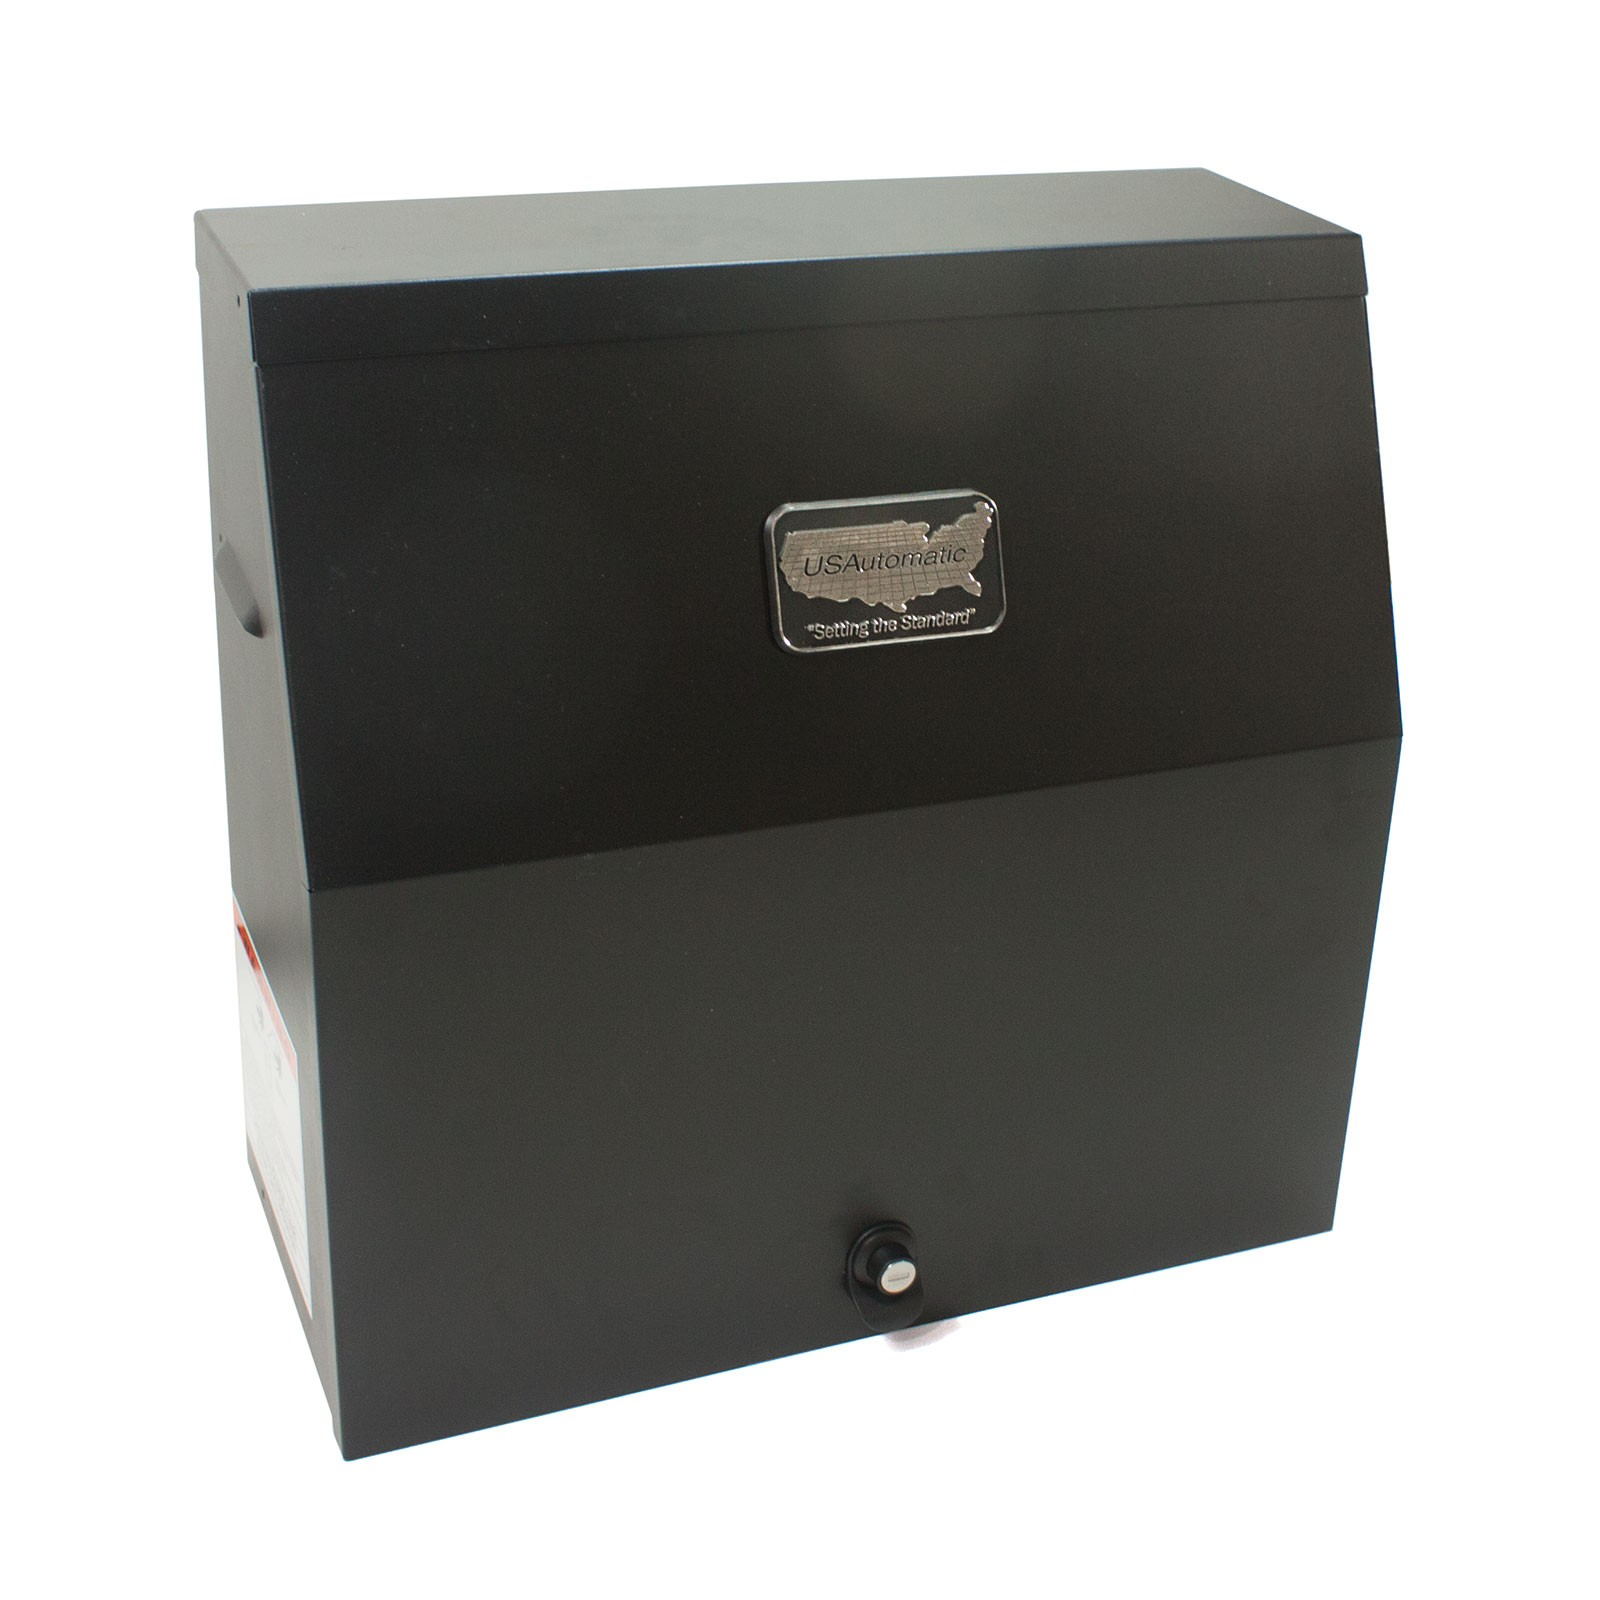 Patriot ii solar charged dual swing gate operator with lcr